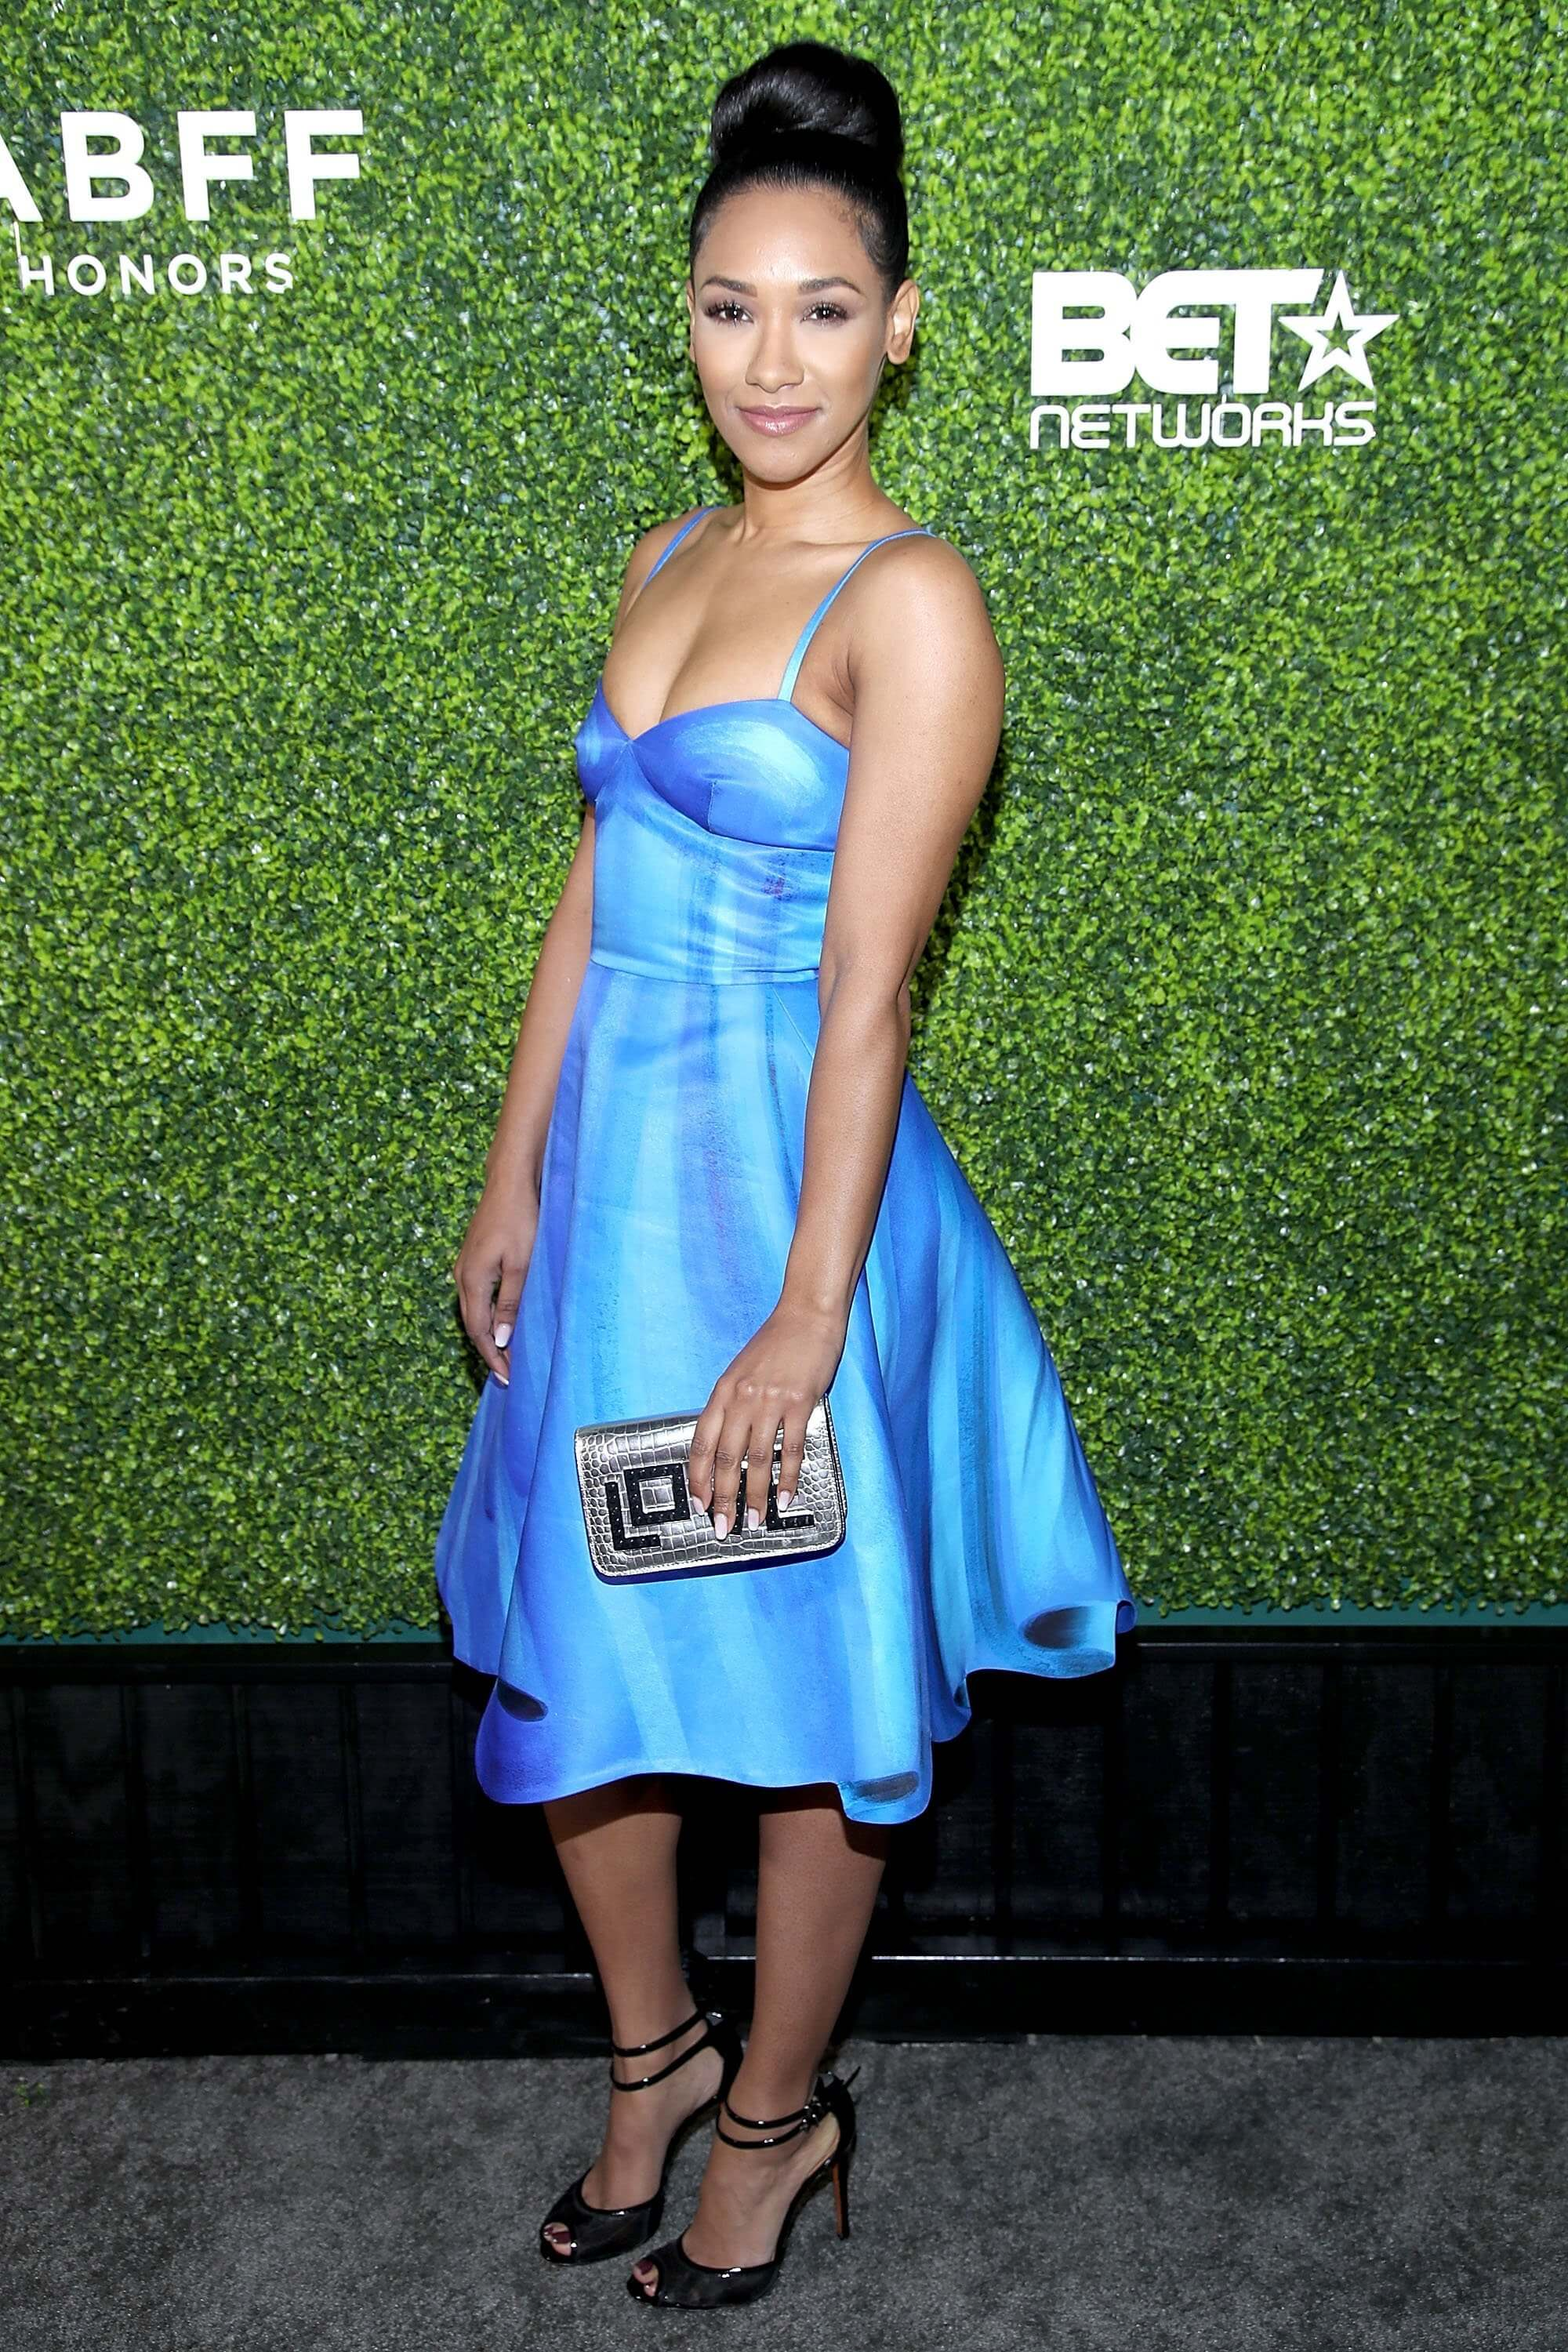 Candice Patton hot busty pic